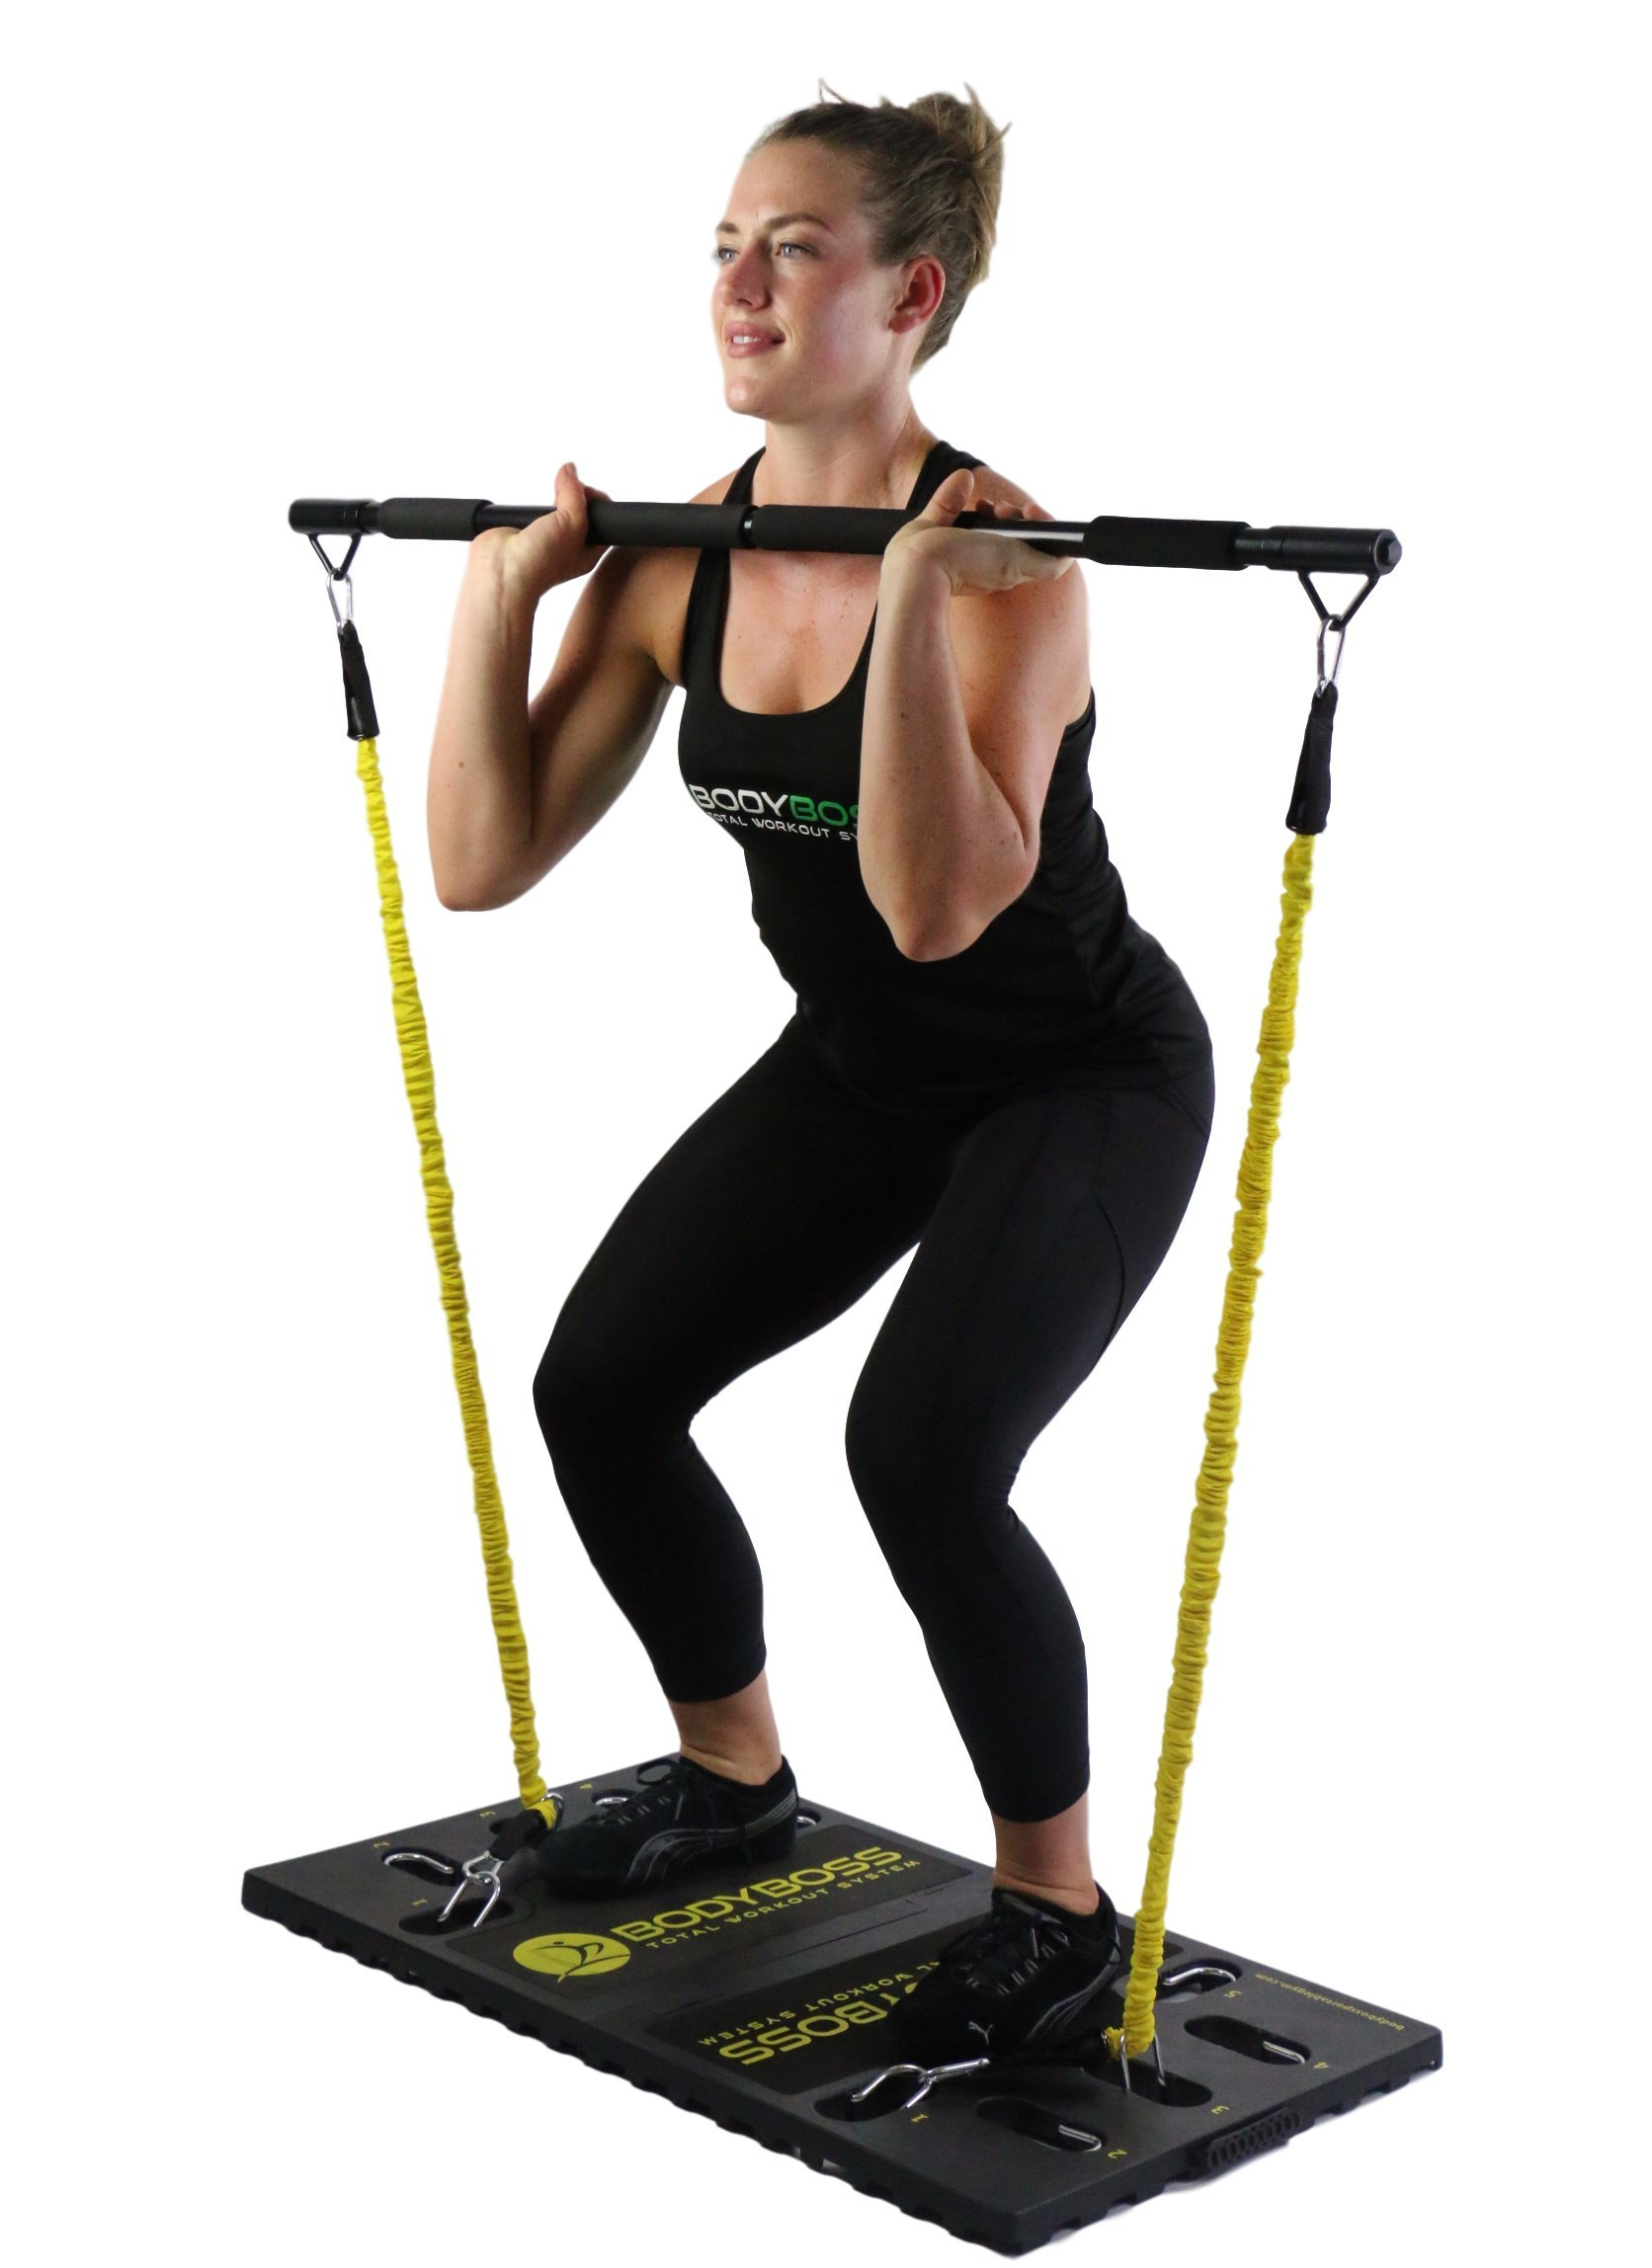 Resistance Bands Full Portable Home Gym Workout Package BodyBoss 2.0